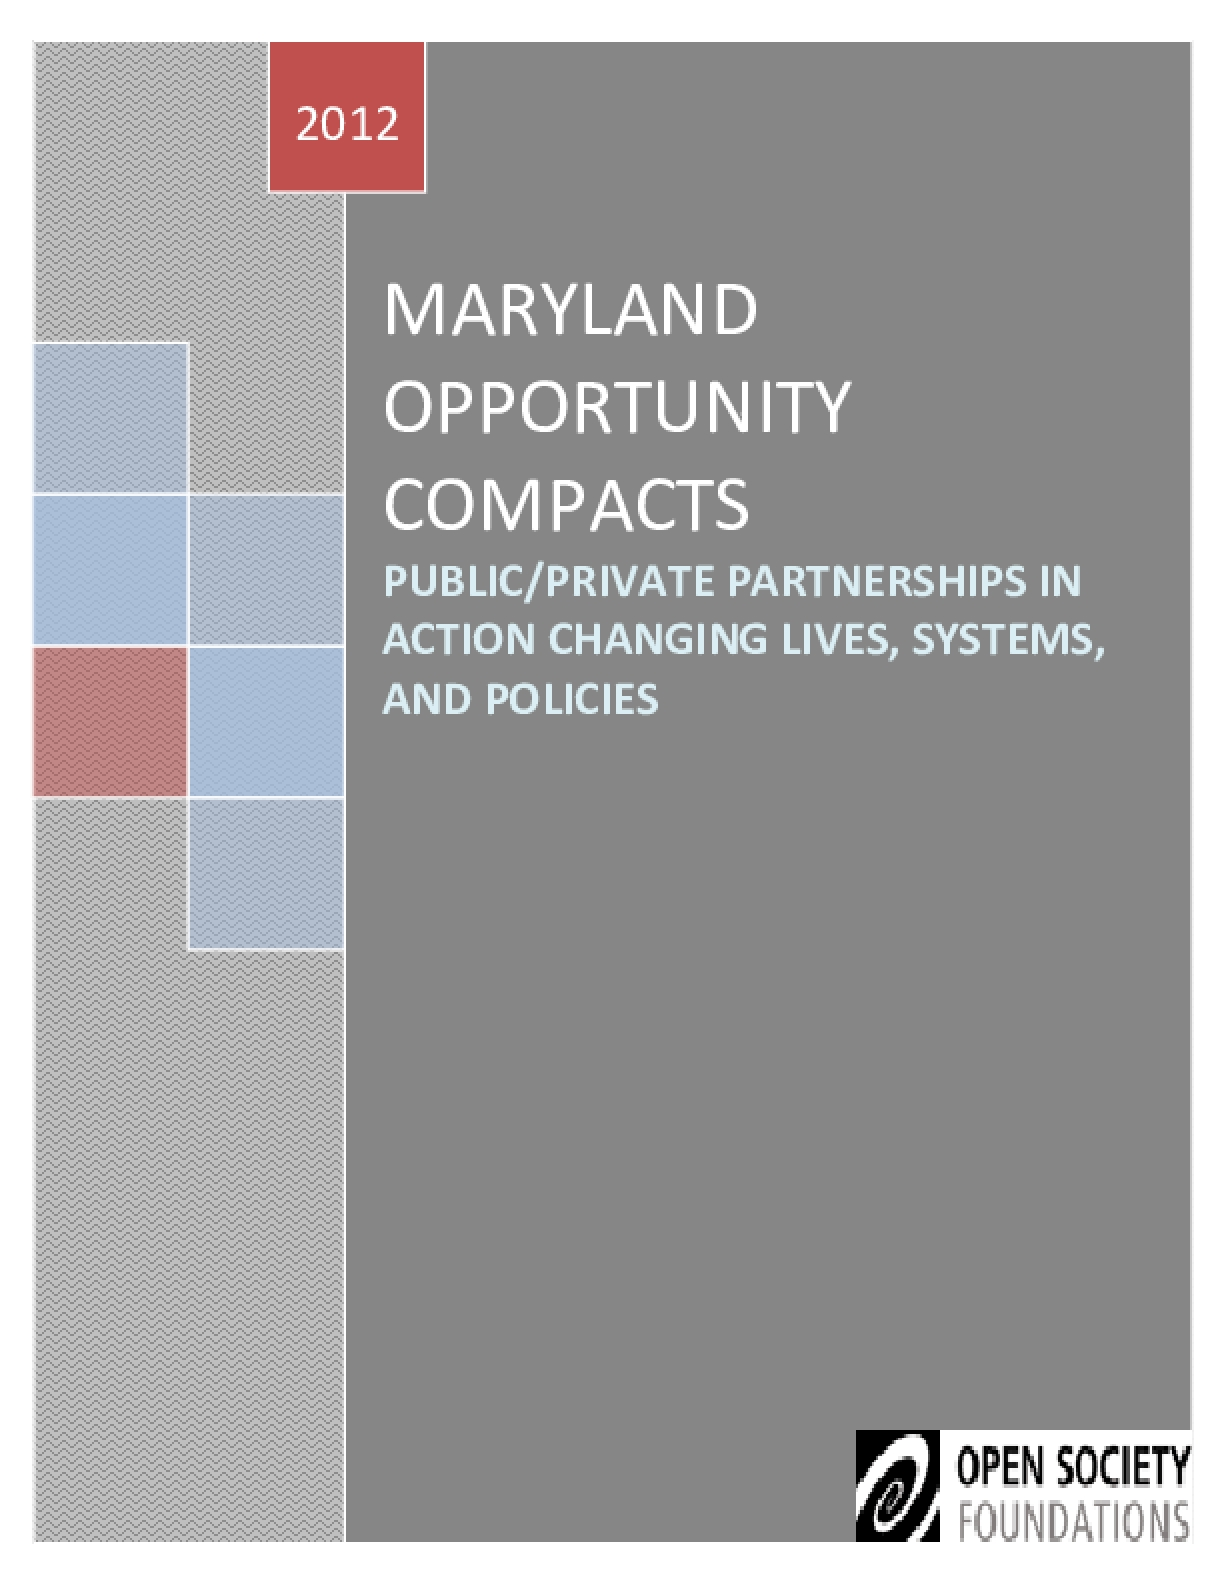 Maryland Opportunity Compacts: Public Private Partnerships in Action Changing Lives, Systems, and Policies